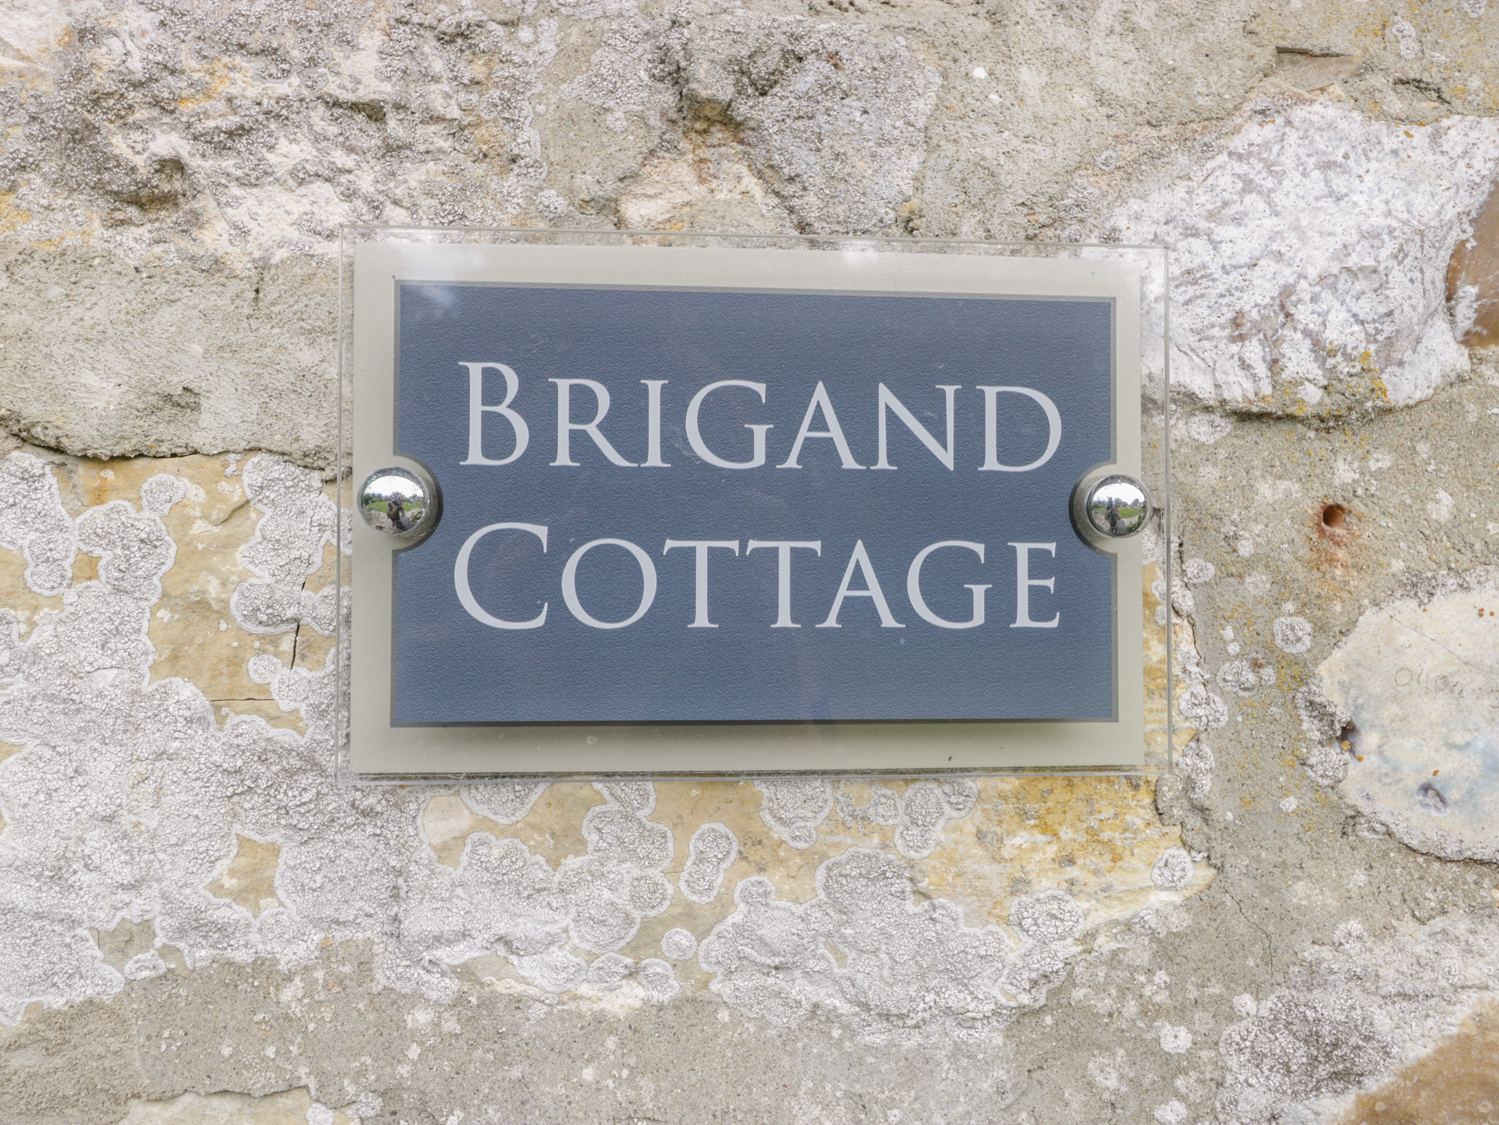 Brigand Cottage